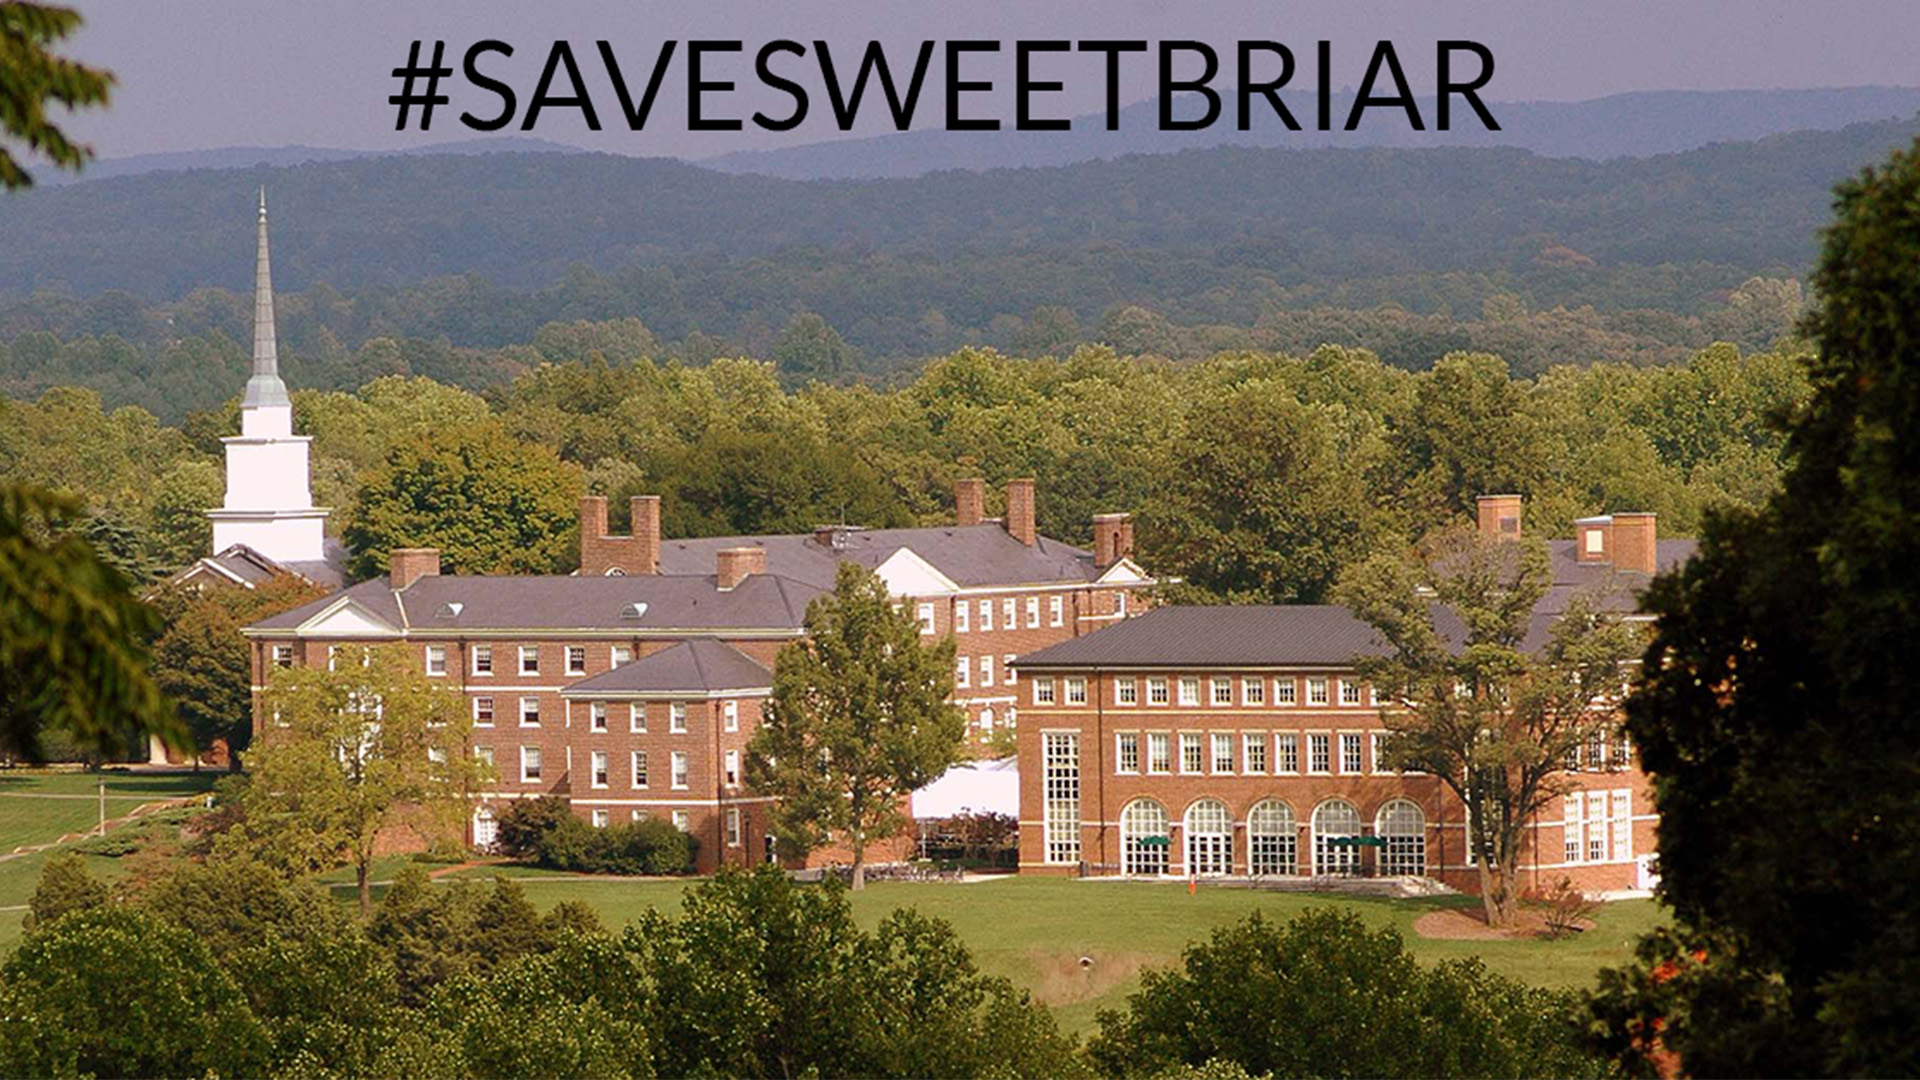 sweet briar women Sweet briar college is ranked #134 in national liberal arts colleges schools are ranked according to their performance across a set of widely accepted indicators of excellence.